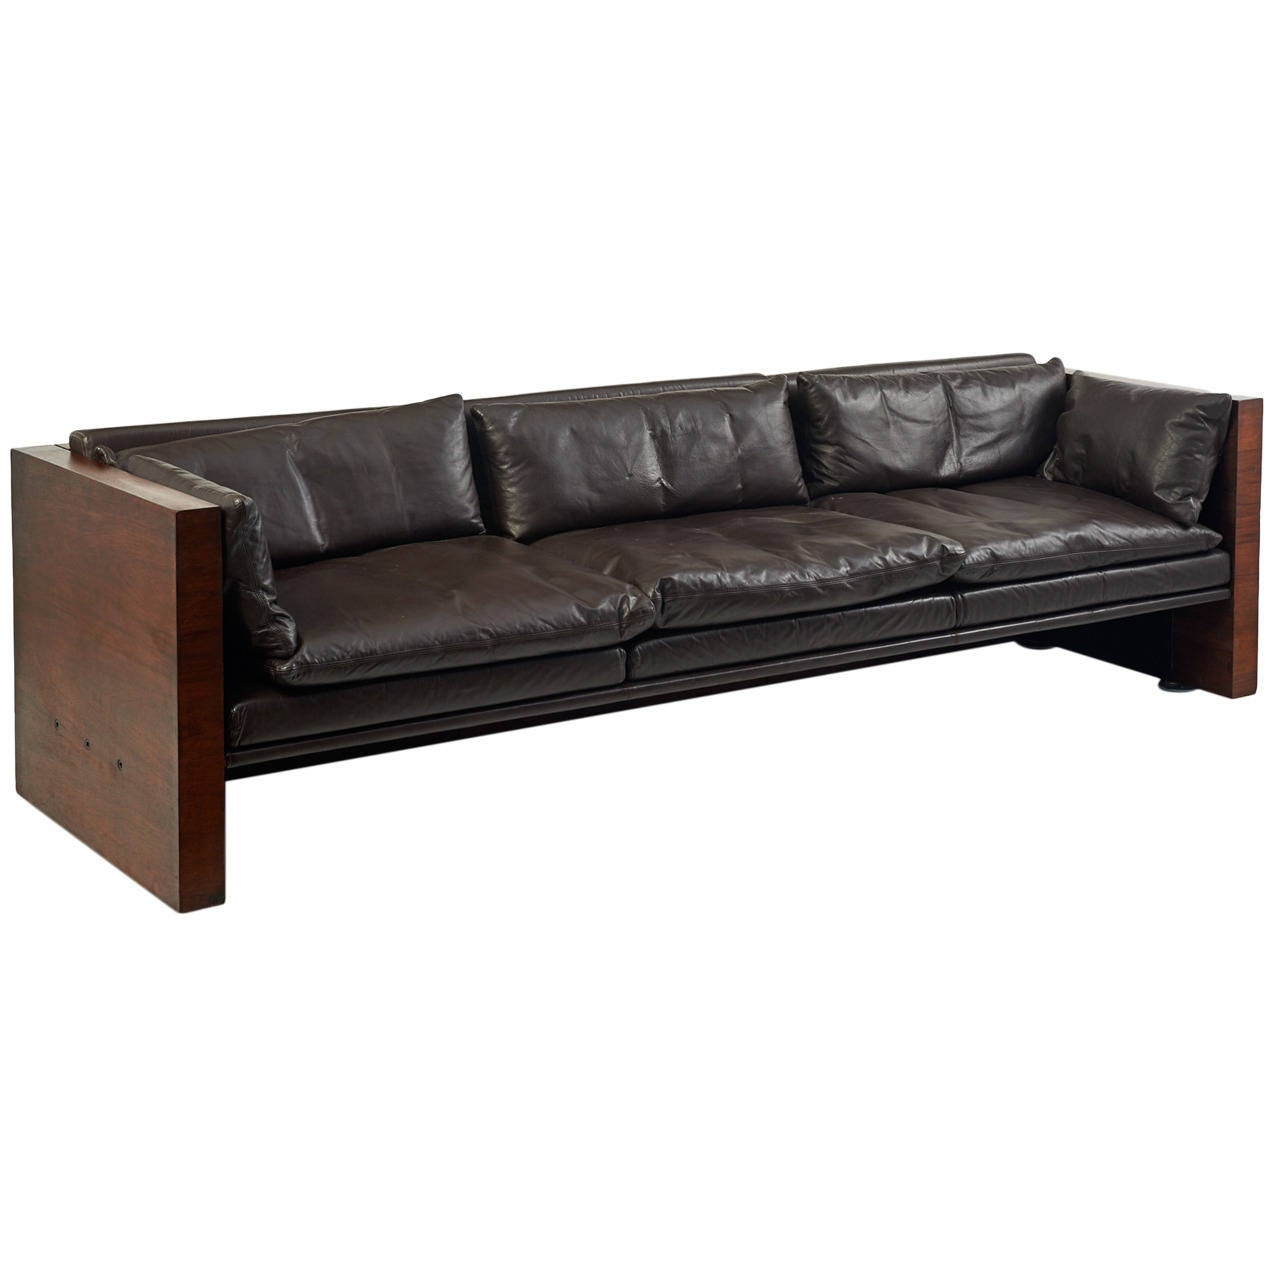 1970s Leather Rosewood Sofa In The Manner Of Milo Baughman